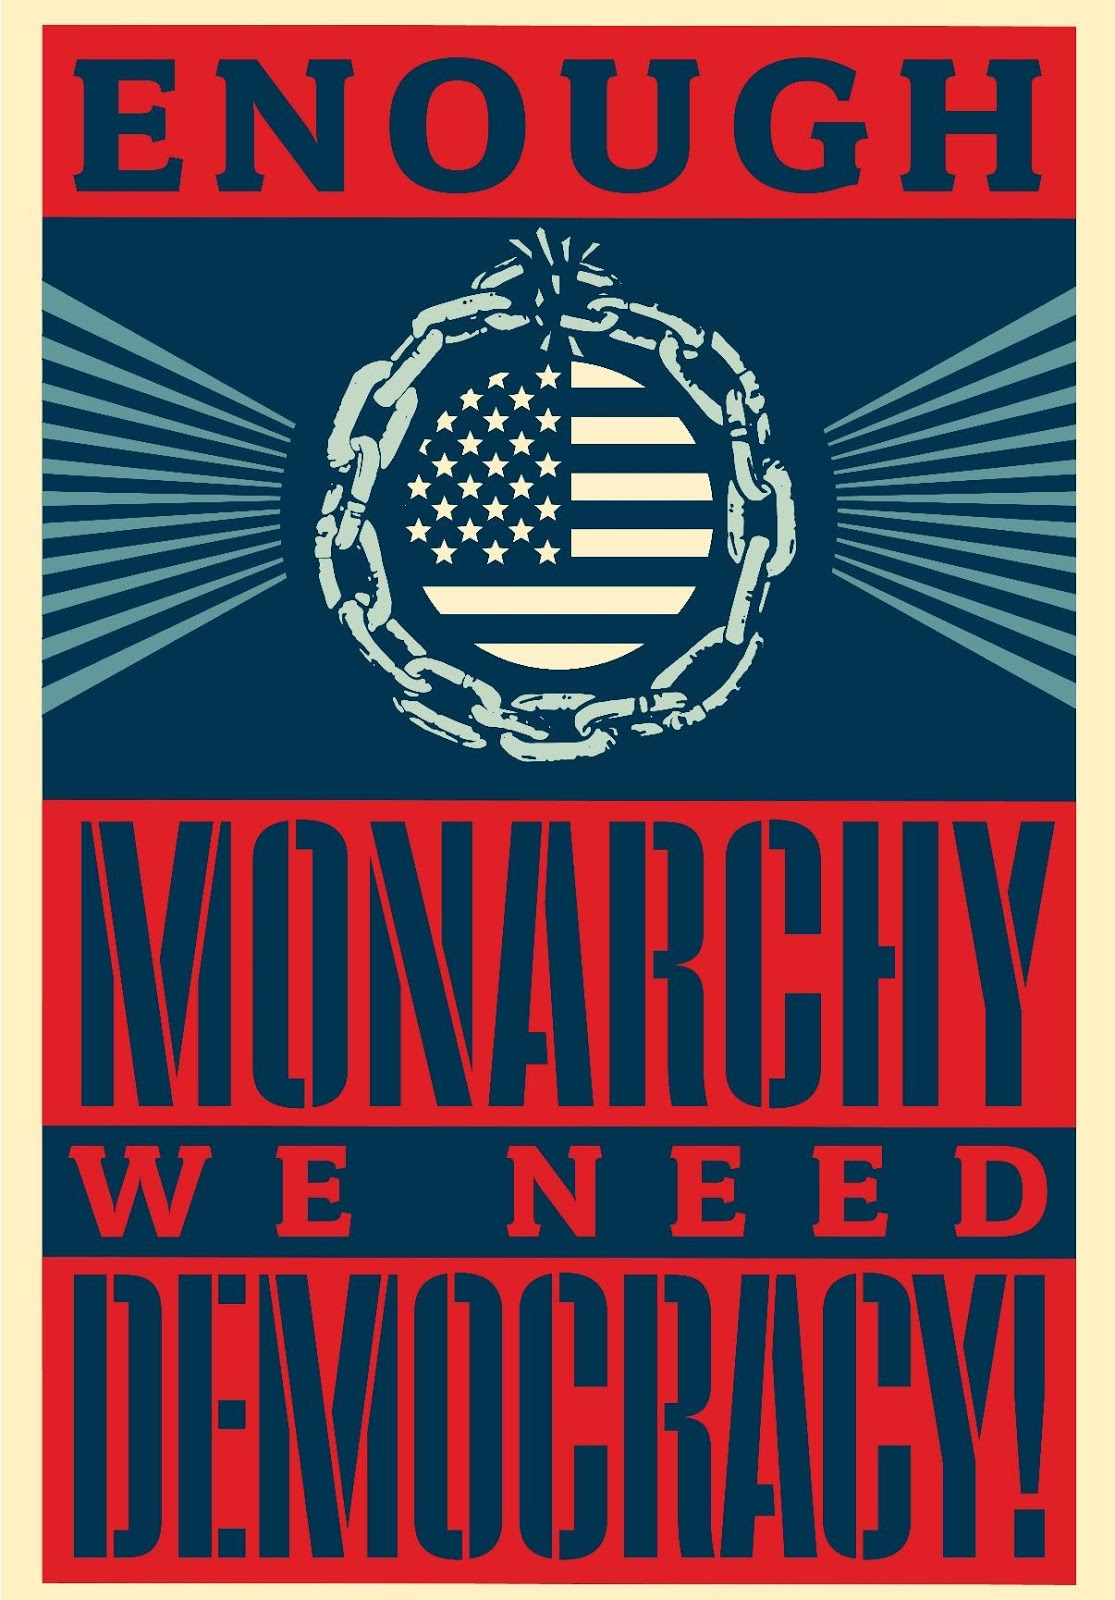 Art by Shepard Fairey that says Enough Monarchy, We Need Democracy!